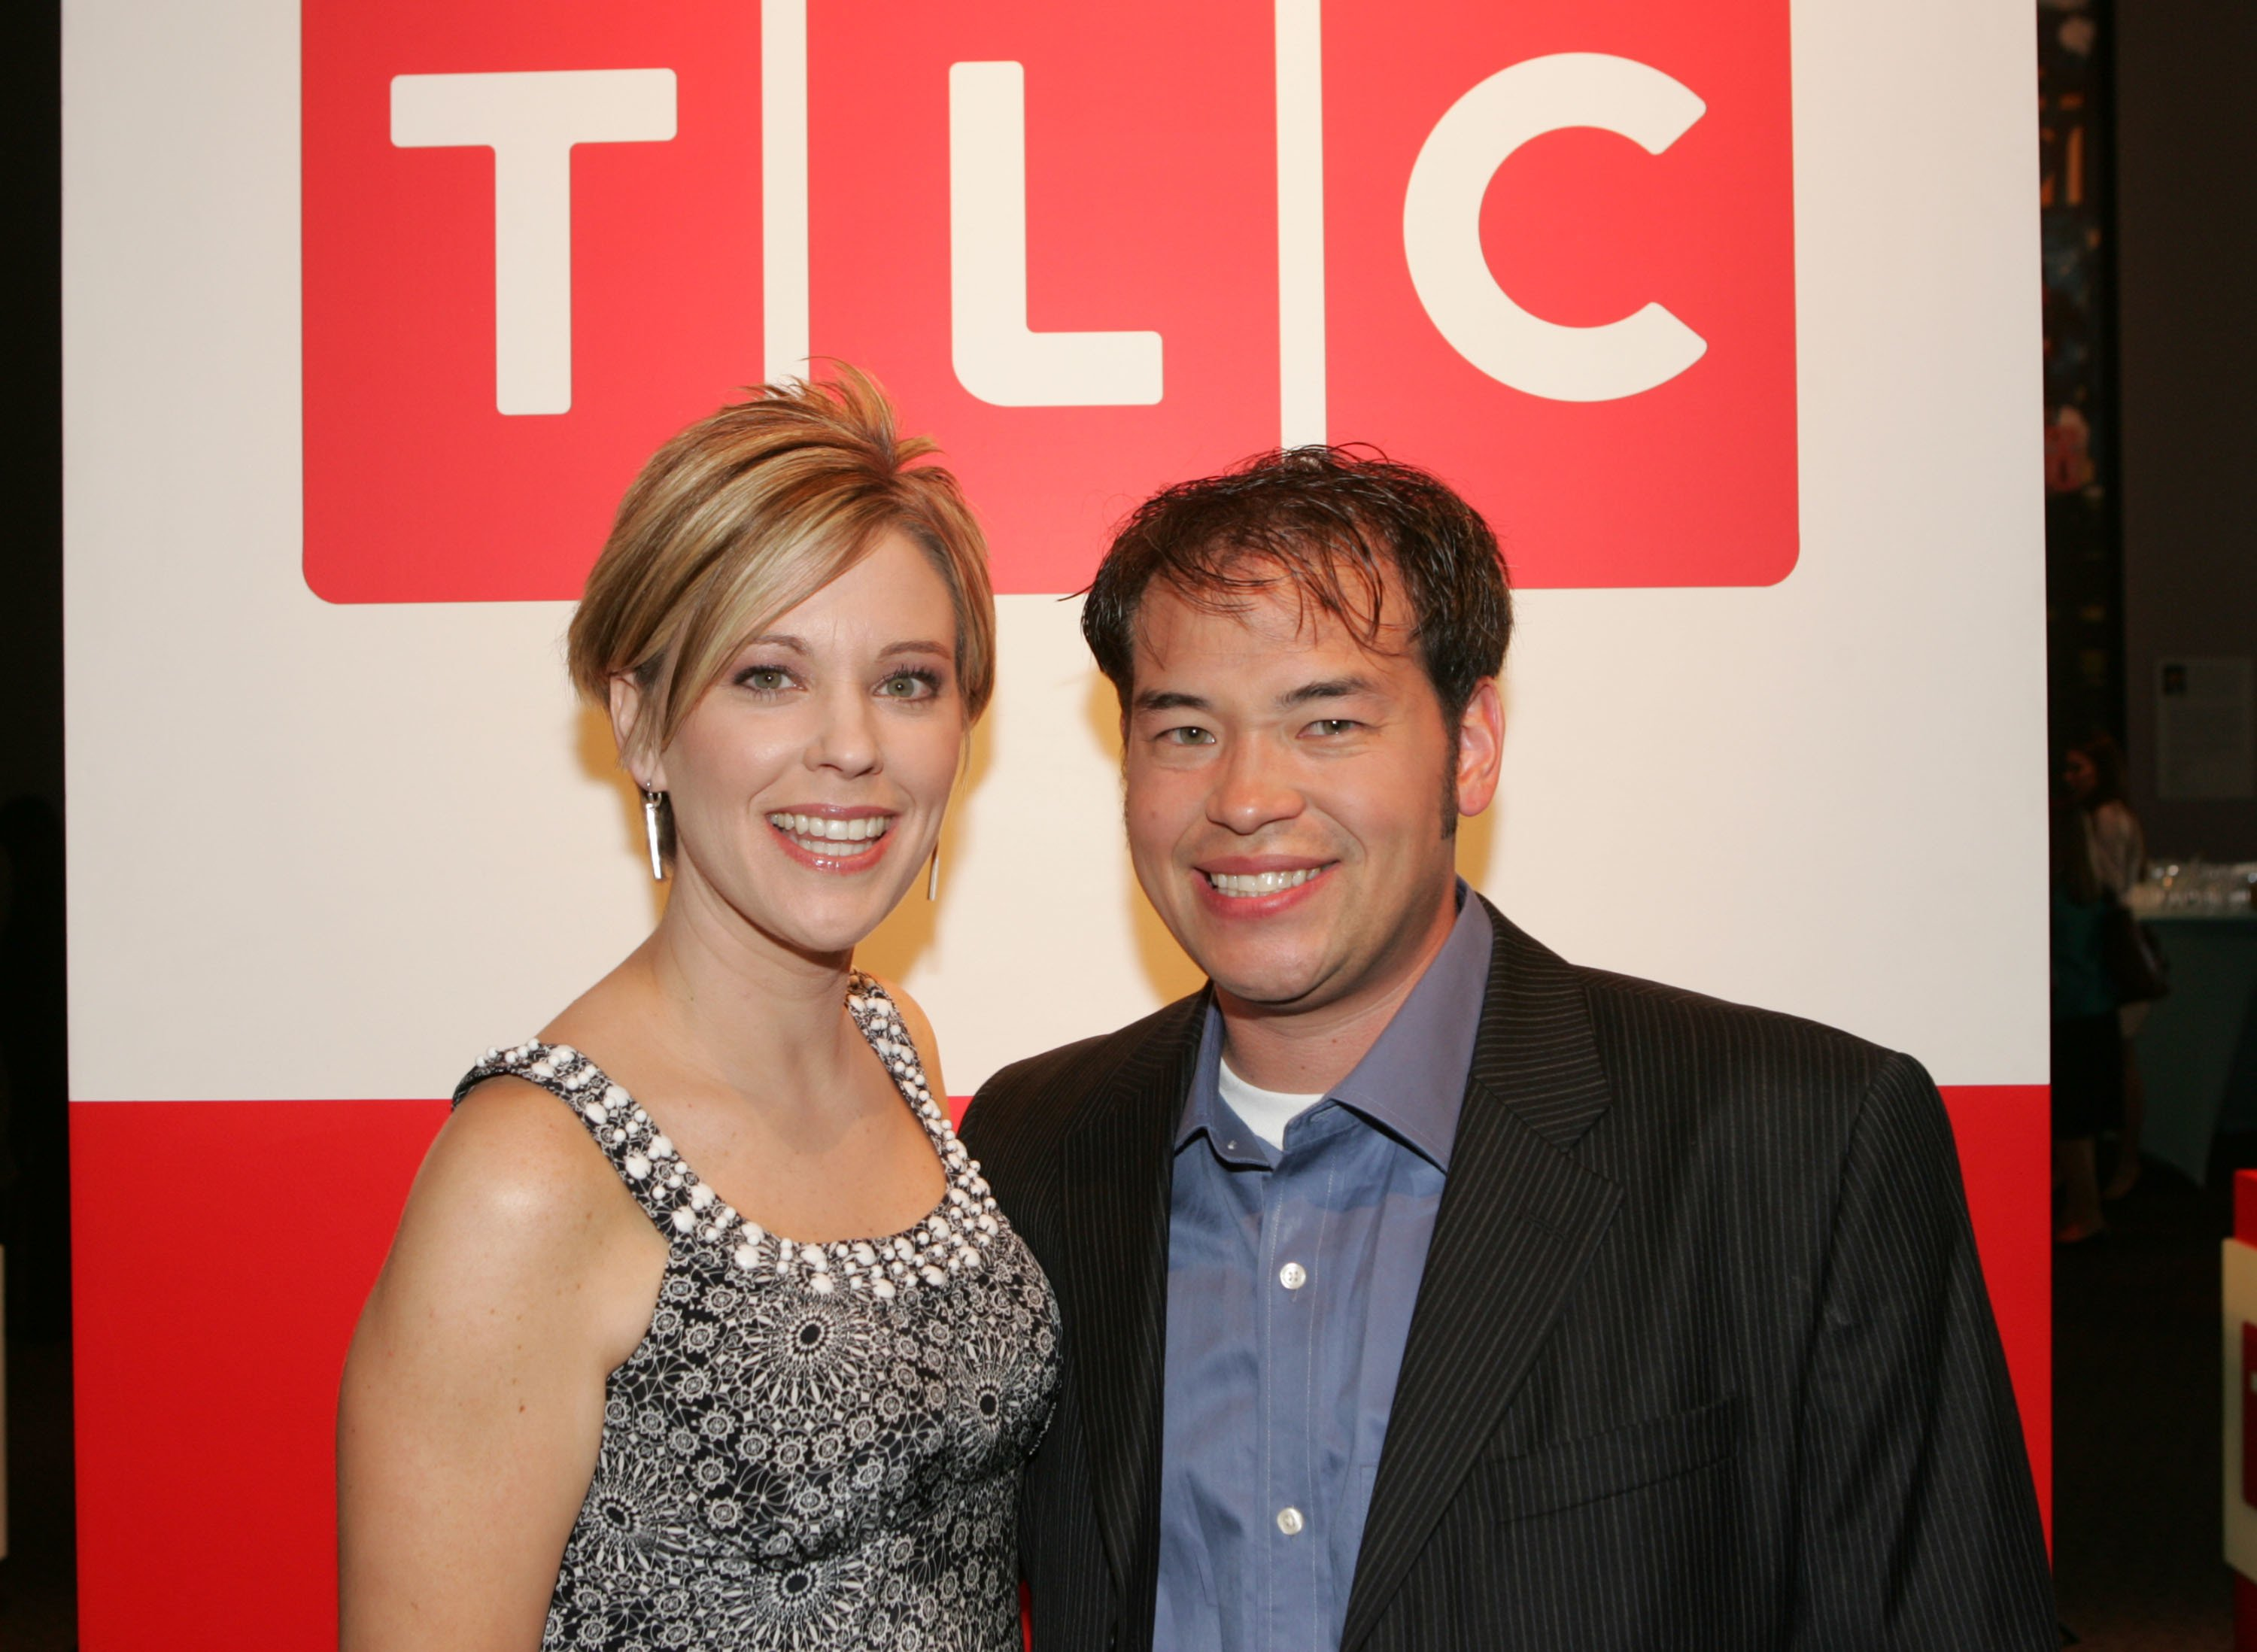 Jon and Kate Gosselin attend the Discovery Upfront Presentation. | Source: Getty Images